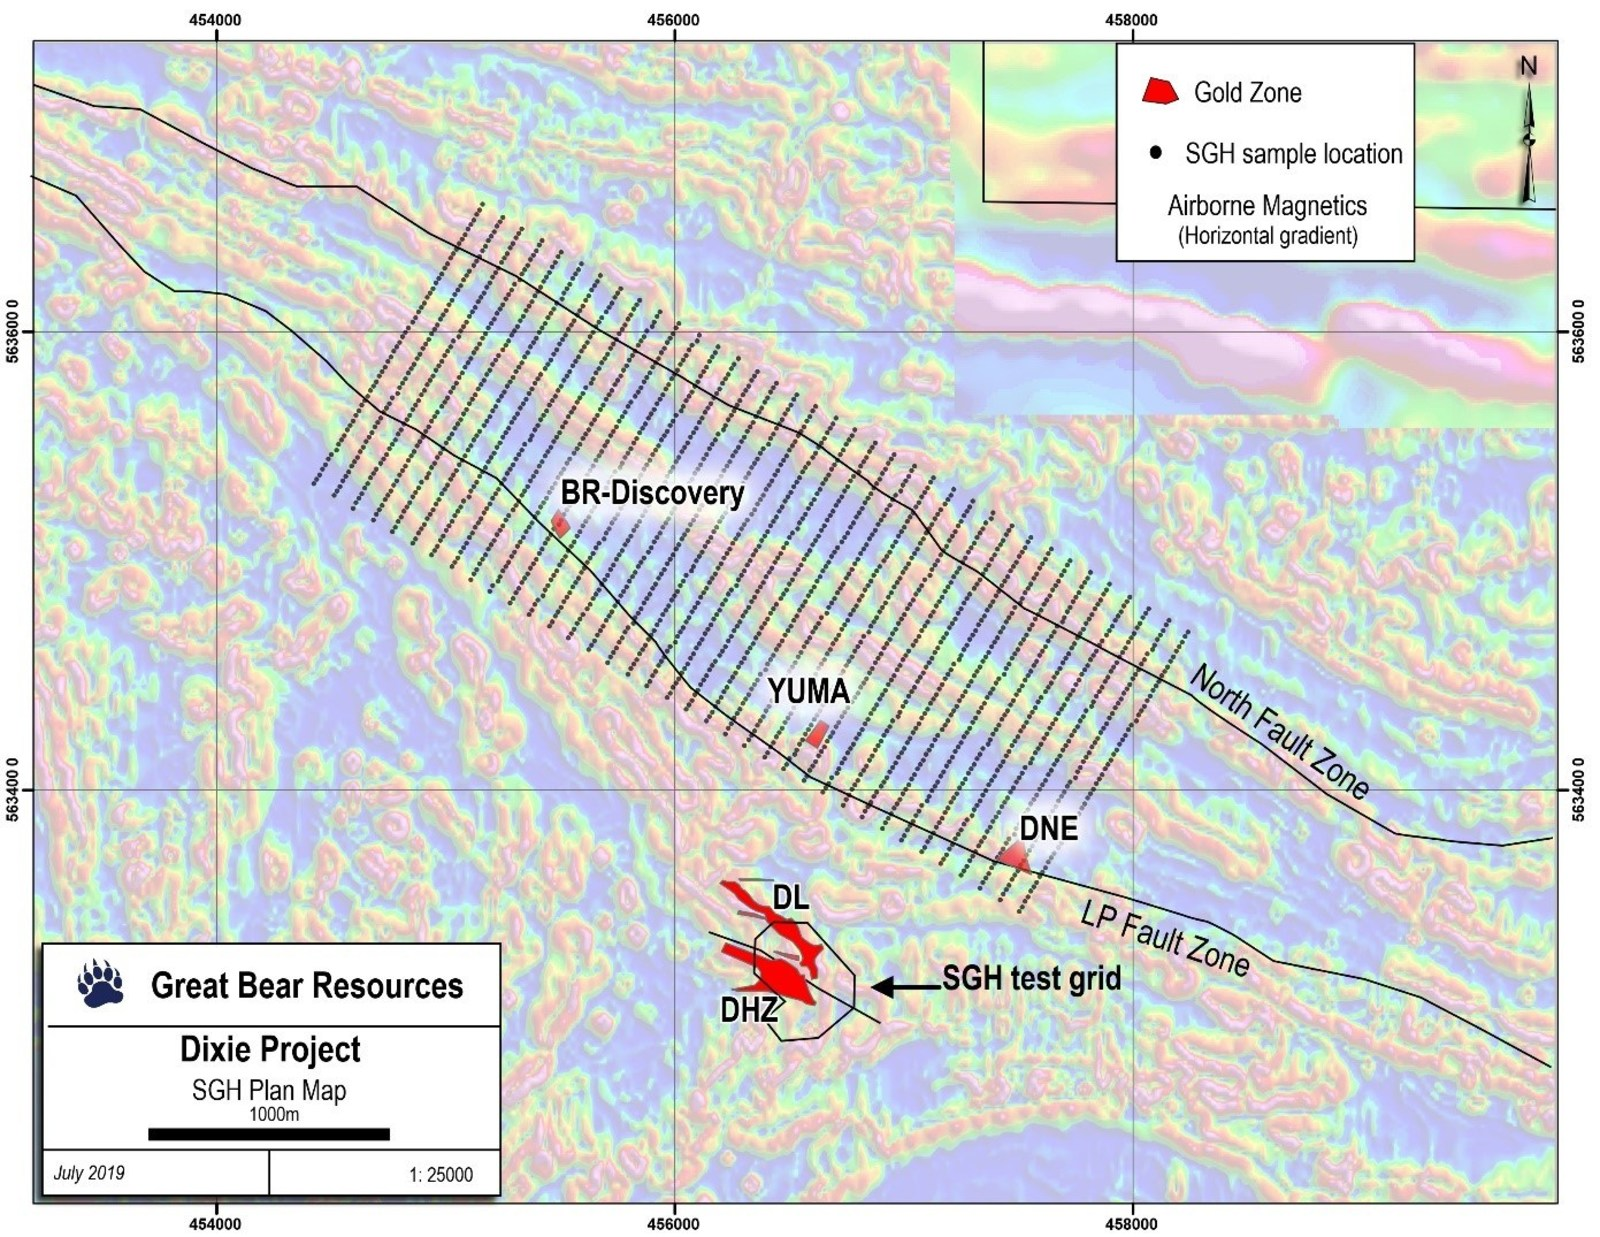 Figure 3: The recently completed 2,100 sample SGH grid along 4 kilometres of LP Fault and North Fault.  The locations of various gold mineralized zones drilled to-date are shown in red.